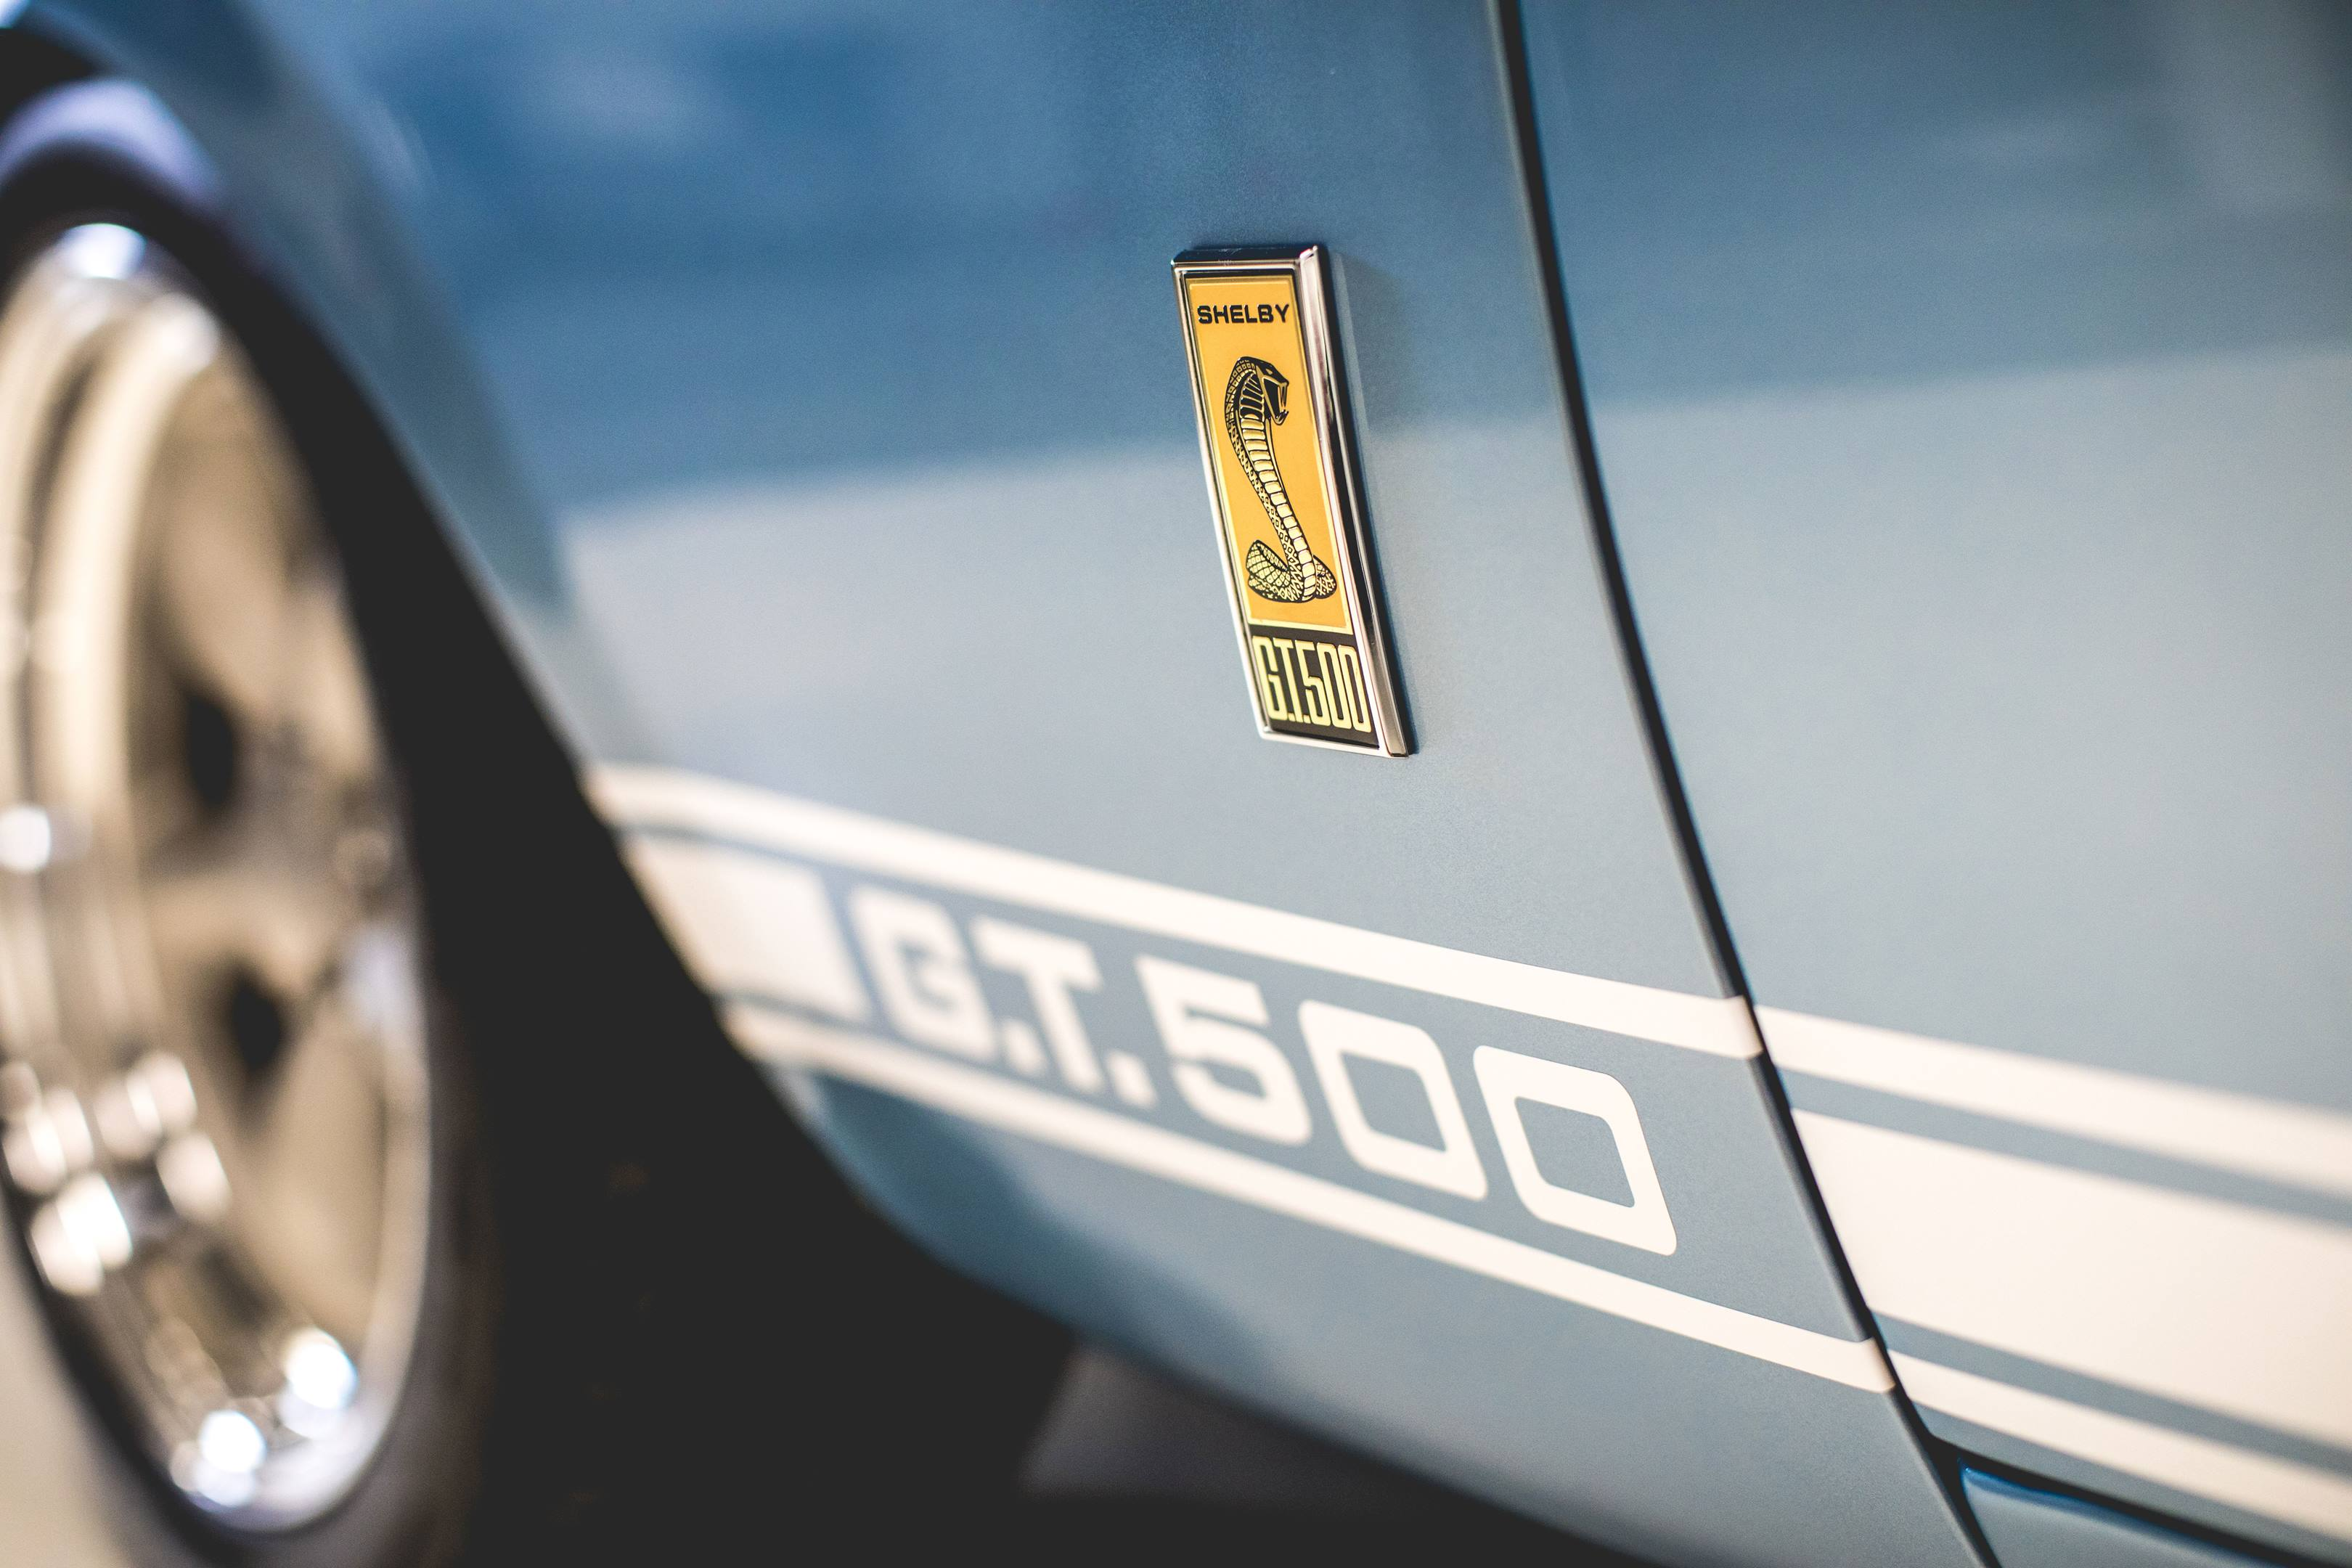 Revology Shelby GT350 badging